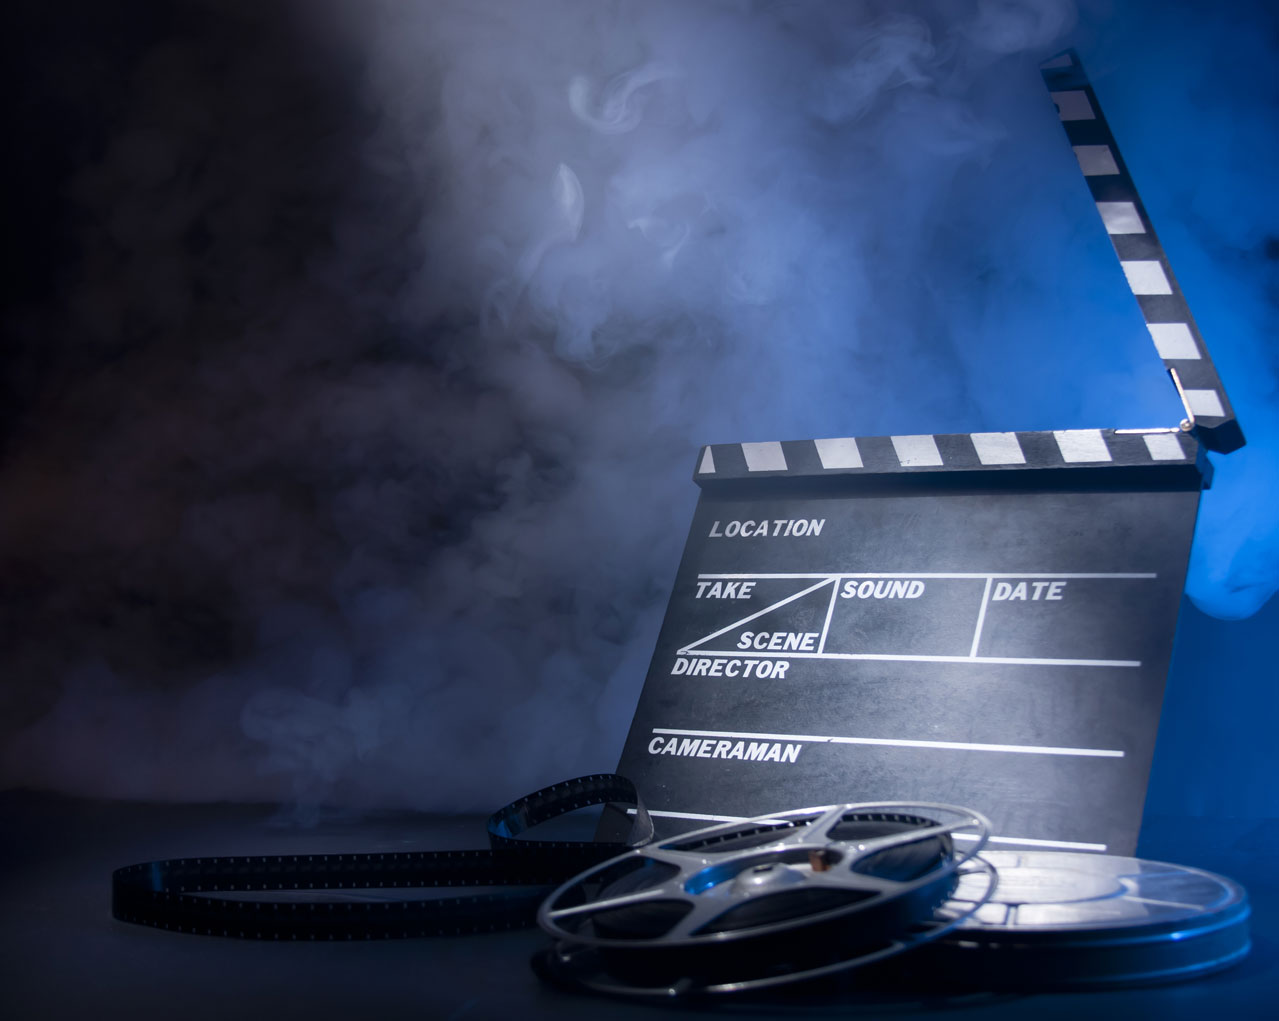 film scene analysis essay One of the most popular forms of film analysis, movie reviews often appear in   focus of the analysis on a sequence or scene that may have.